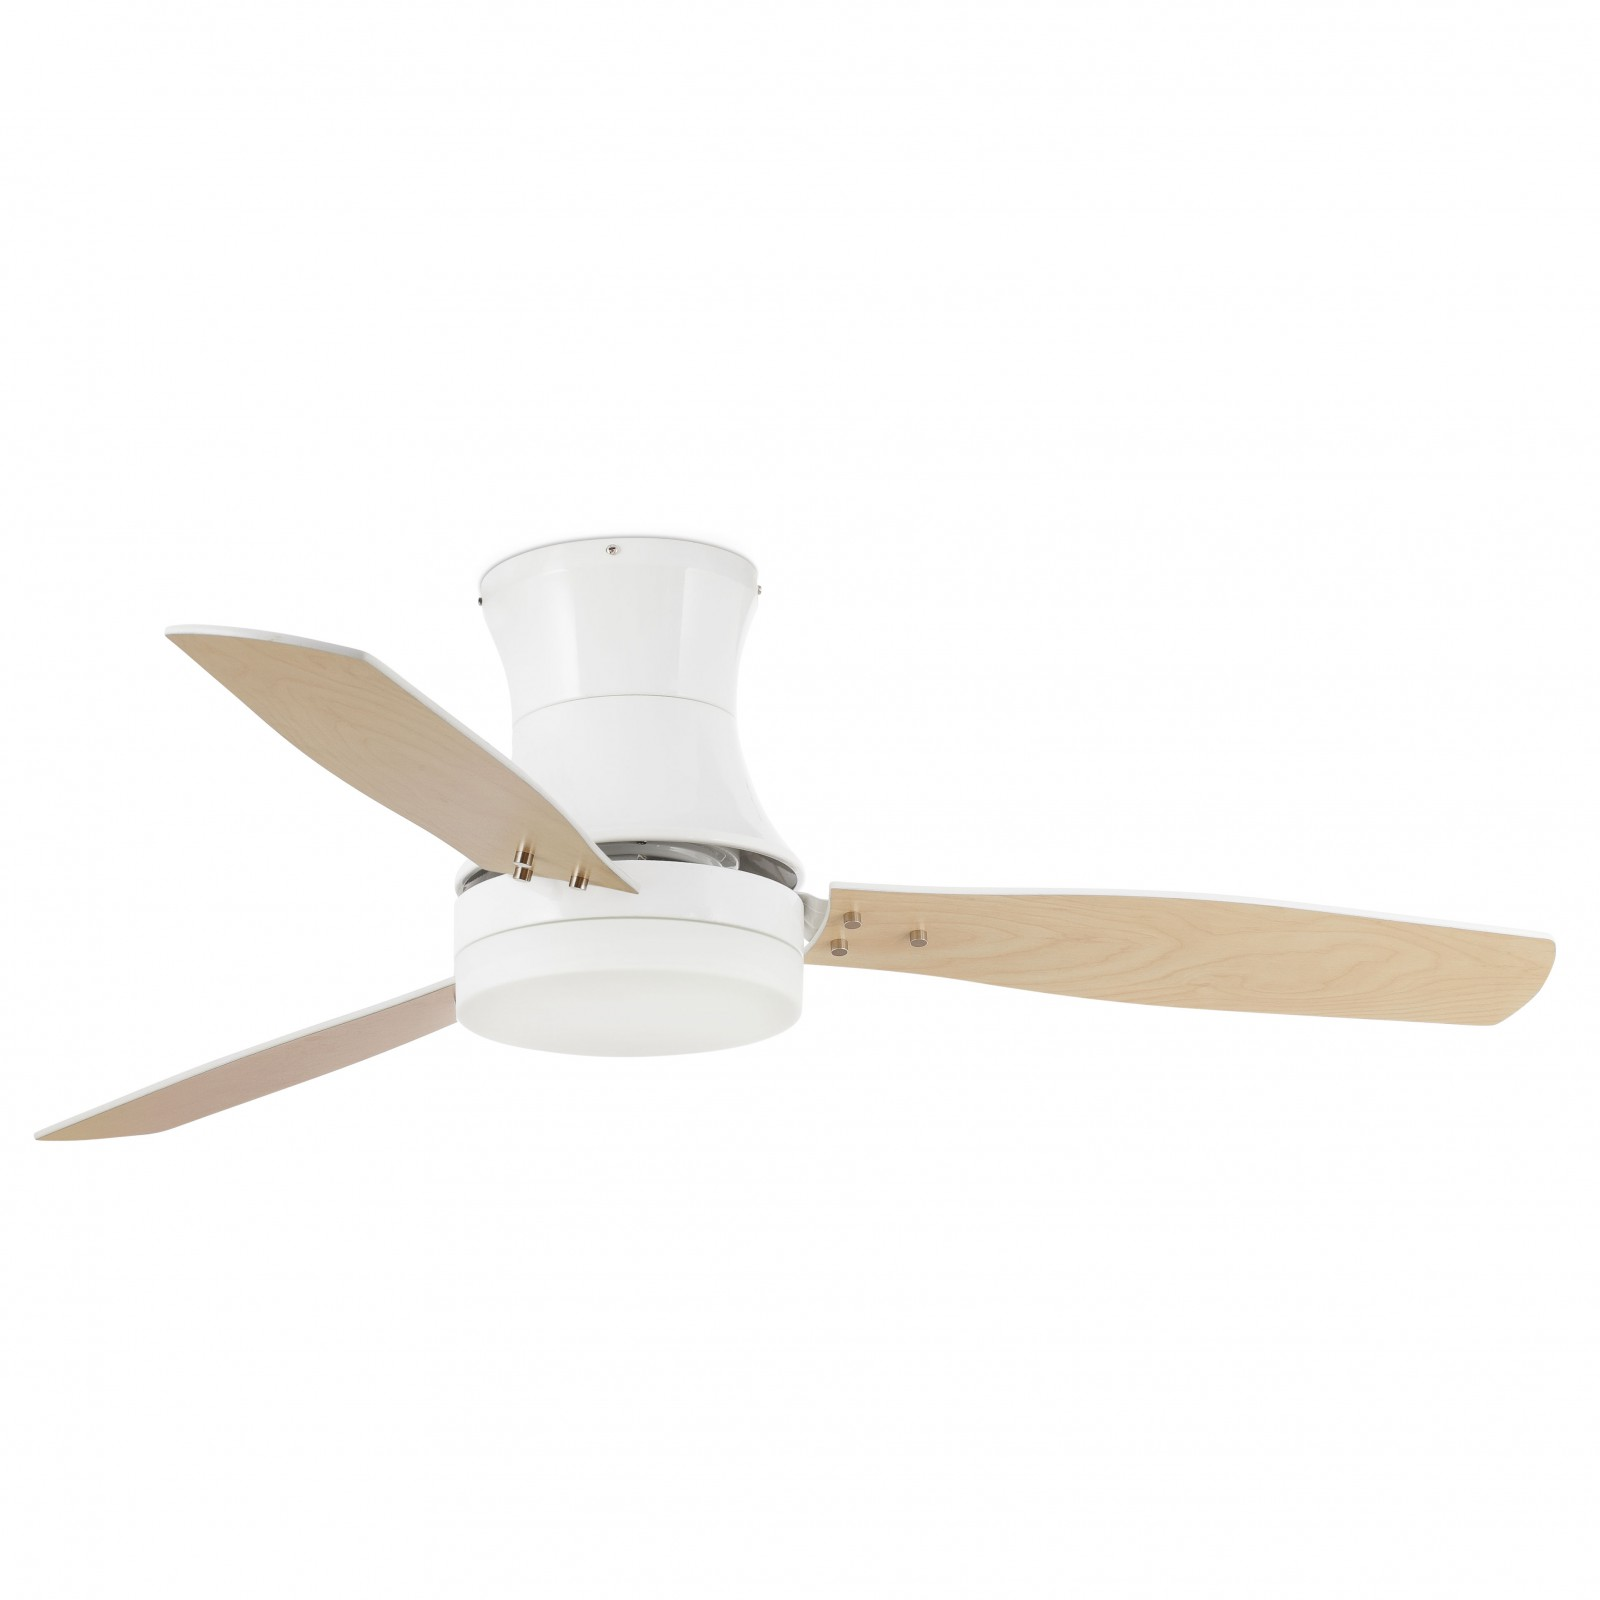 "Faro ceiling fan Tonsay White 132 cm 52"" with light and remote"